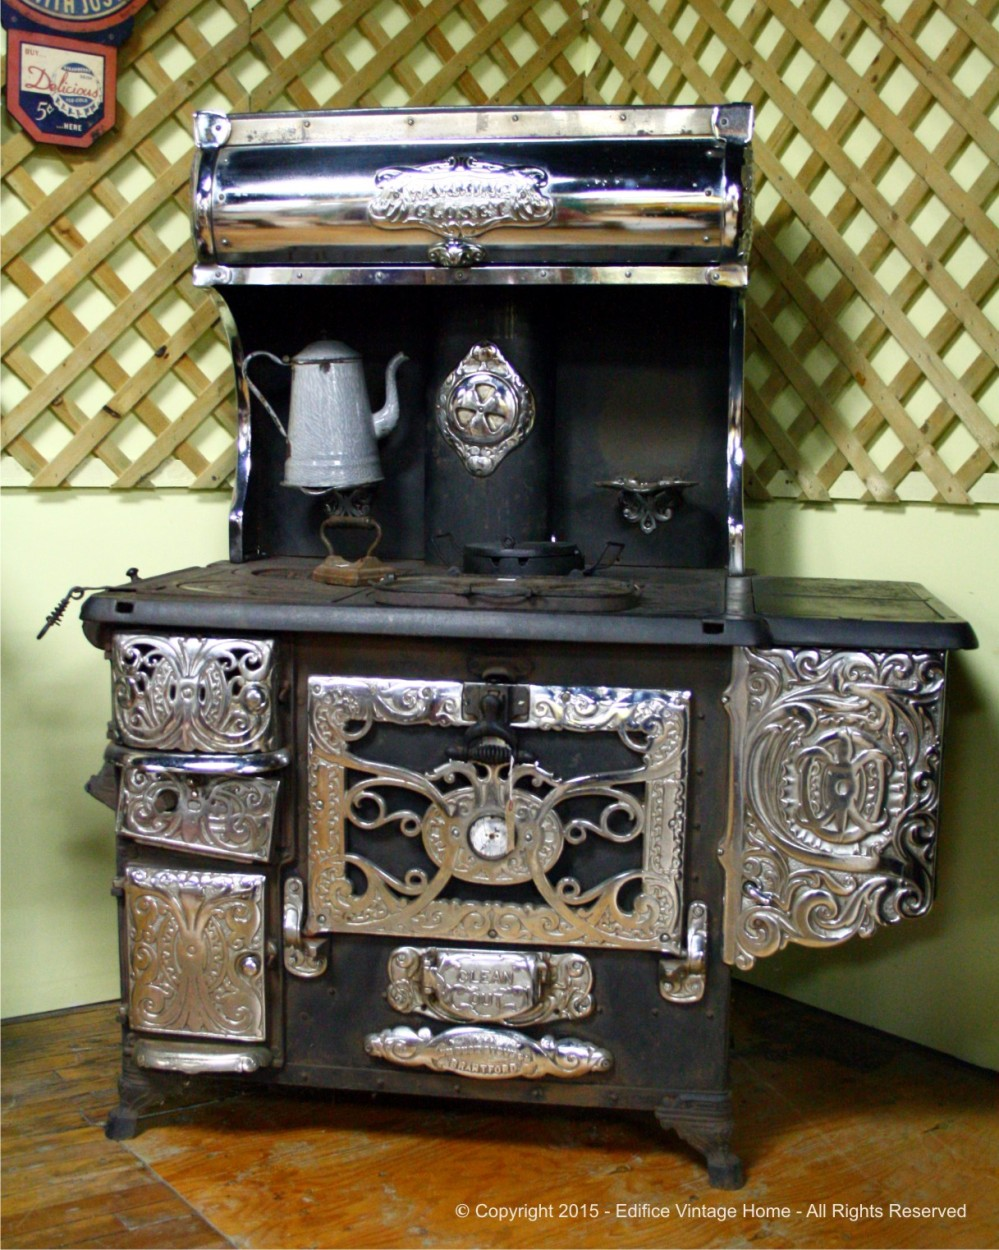 Antique Stoves Copyright 2015 Edifice 15